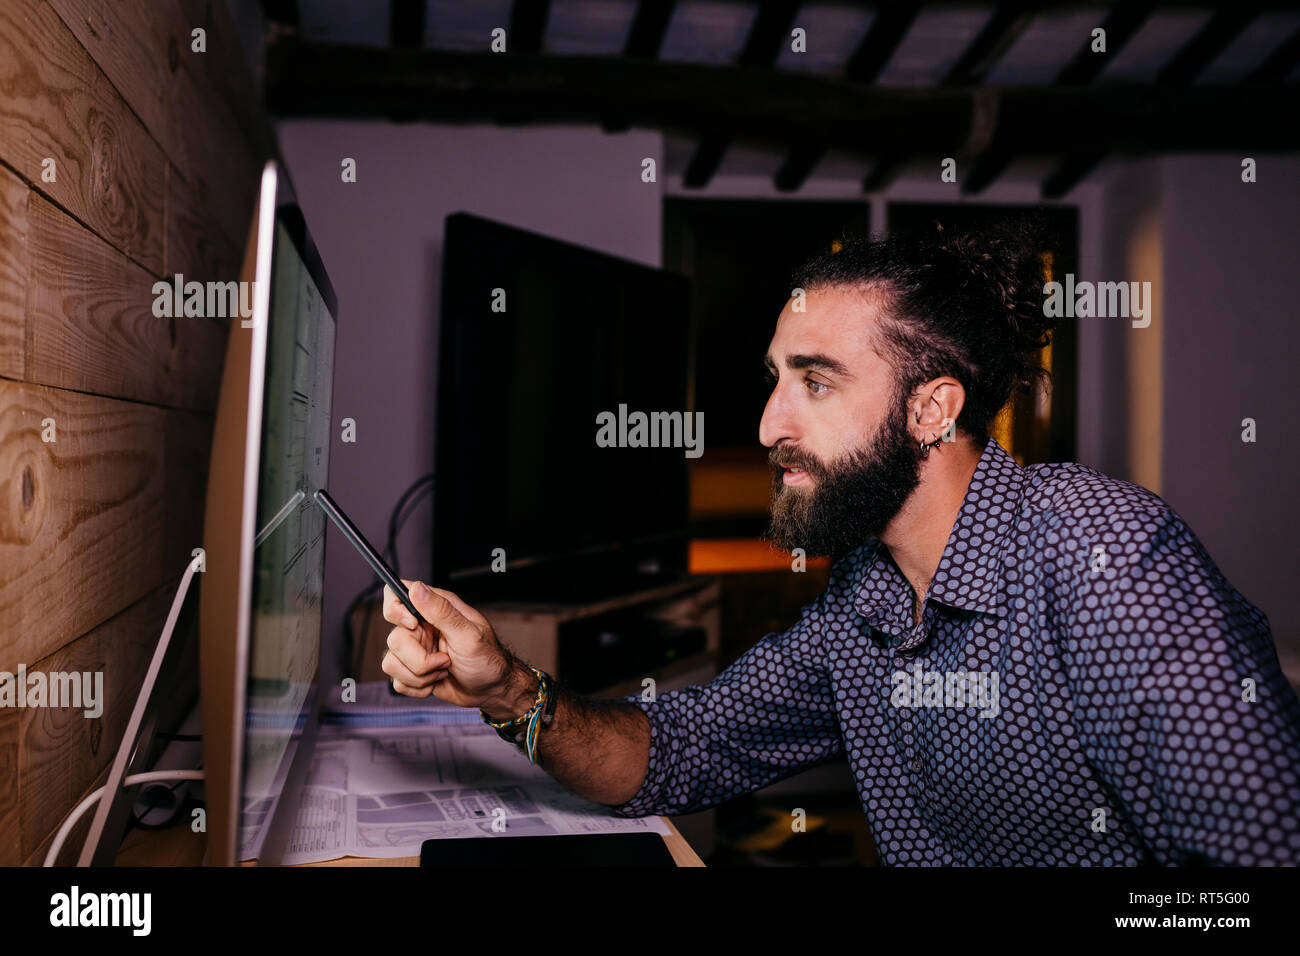 Young architect working hard on a new project at home at night - Stock Image